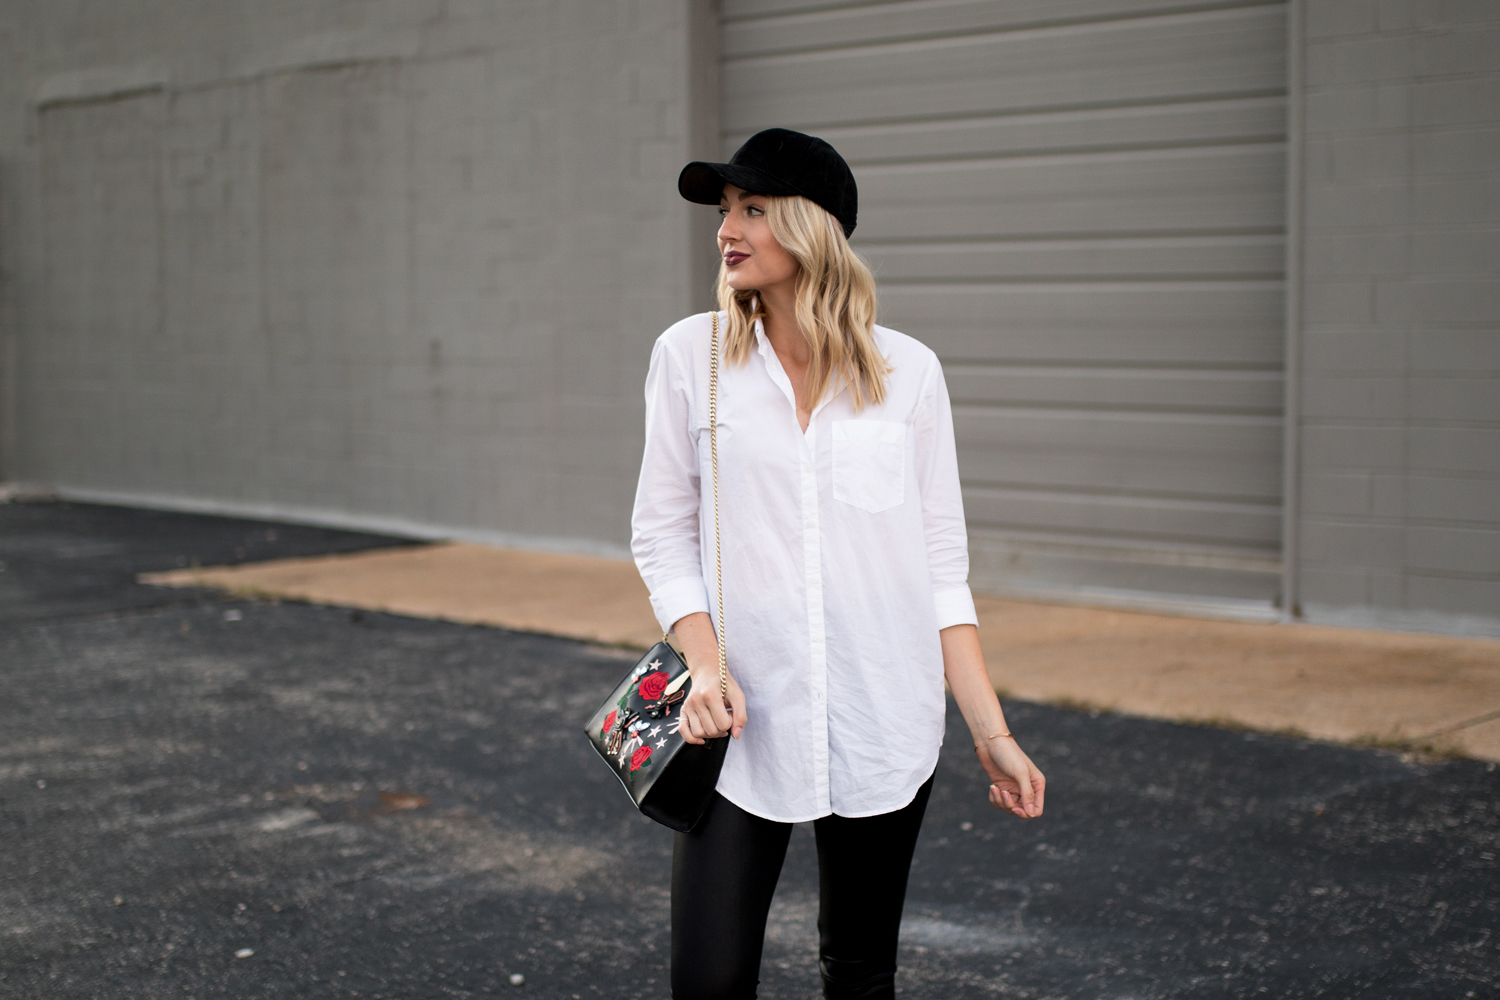 Casual way to style a white button-down